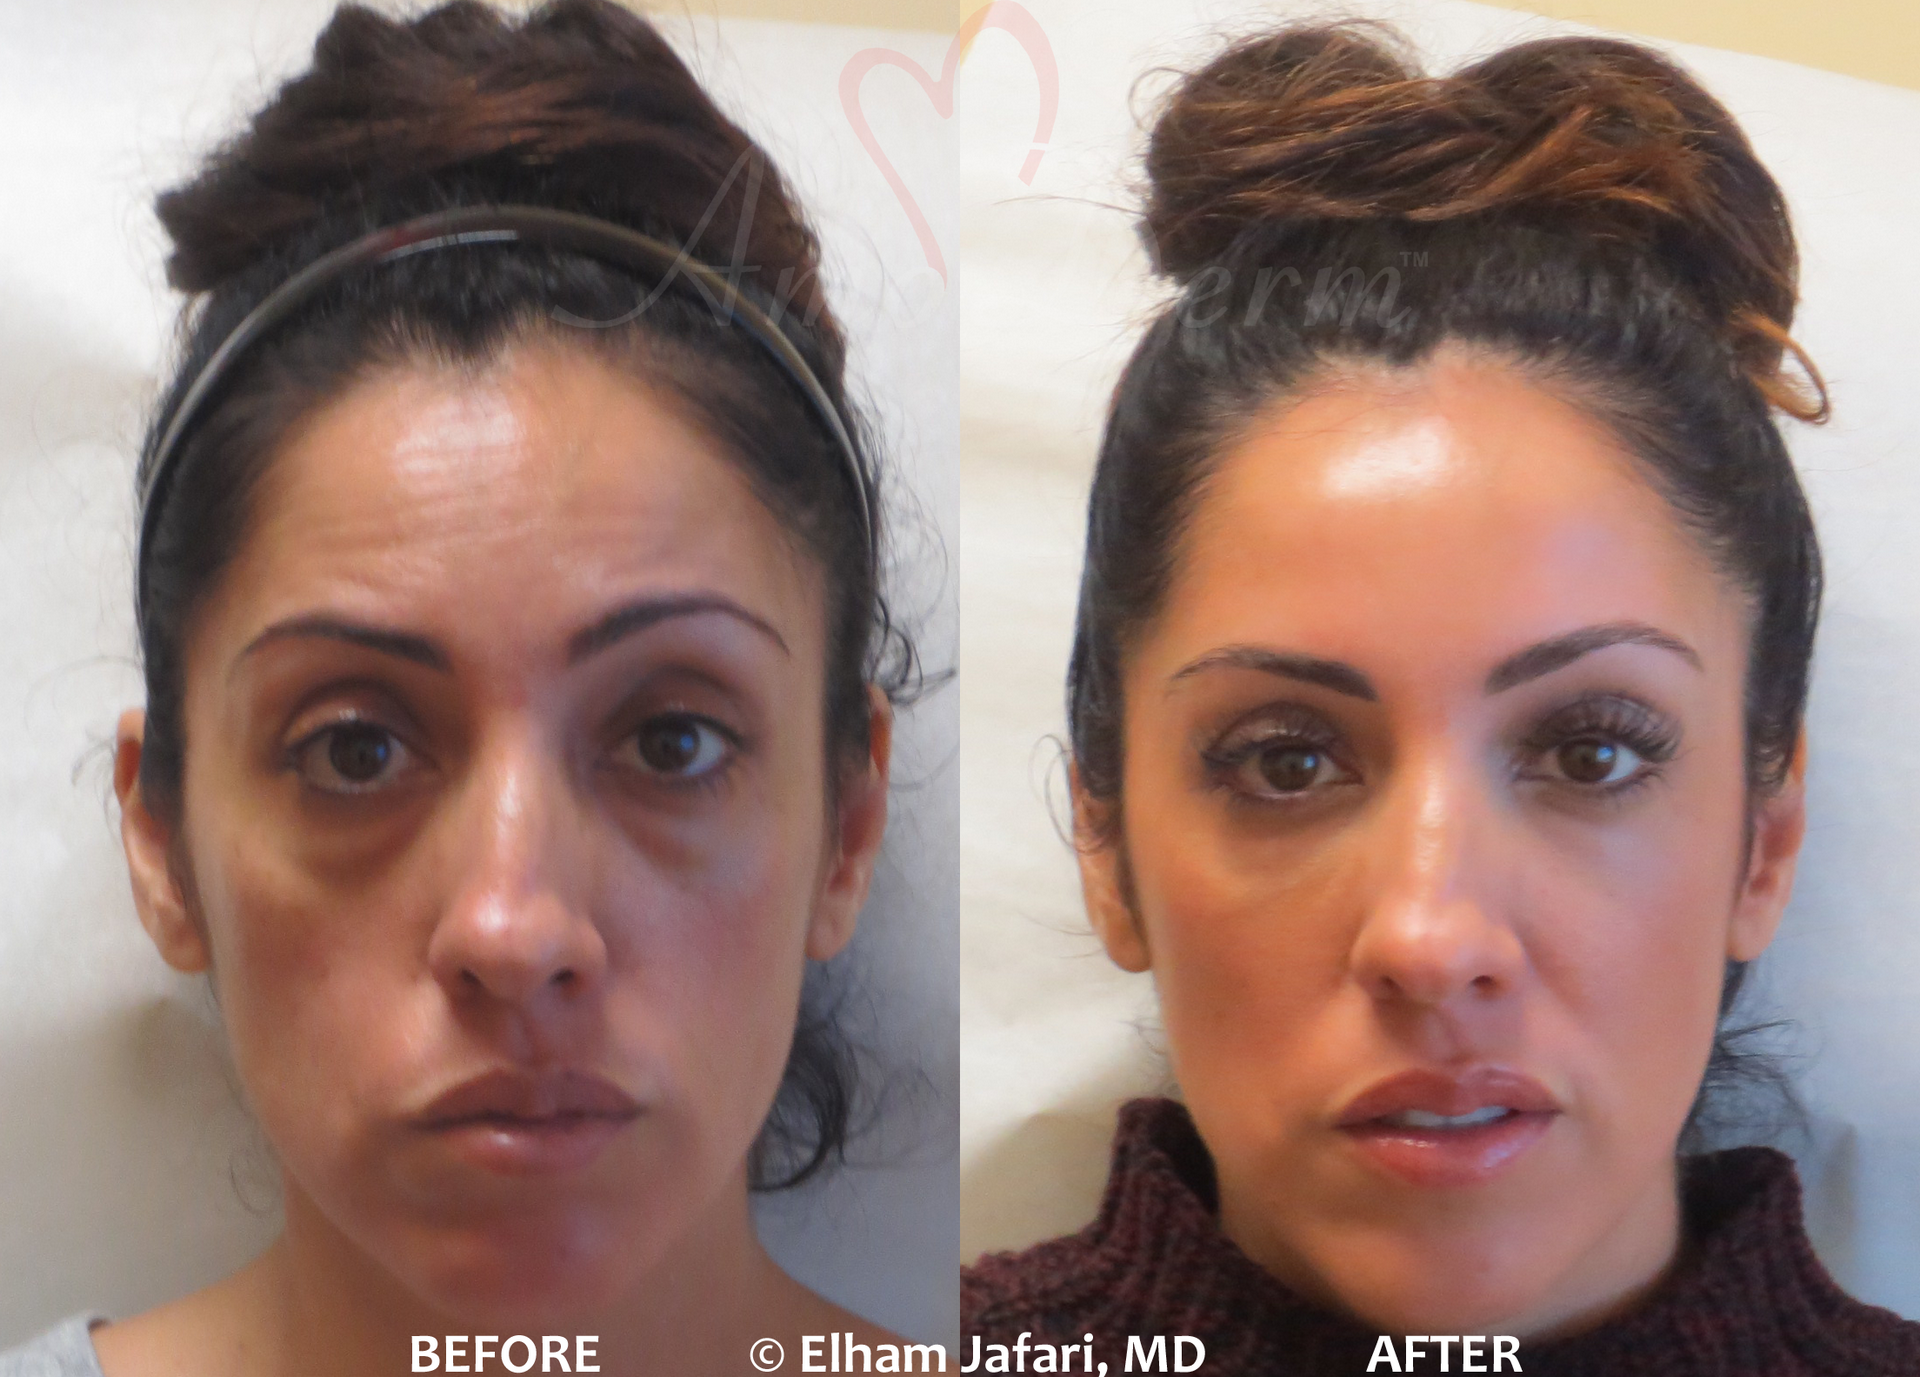 Surgical Facelift or Liquid Facelift with Dermal Fillers - Before and After pictures